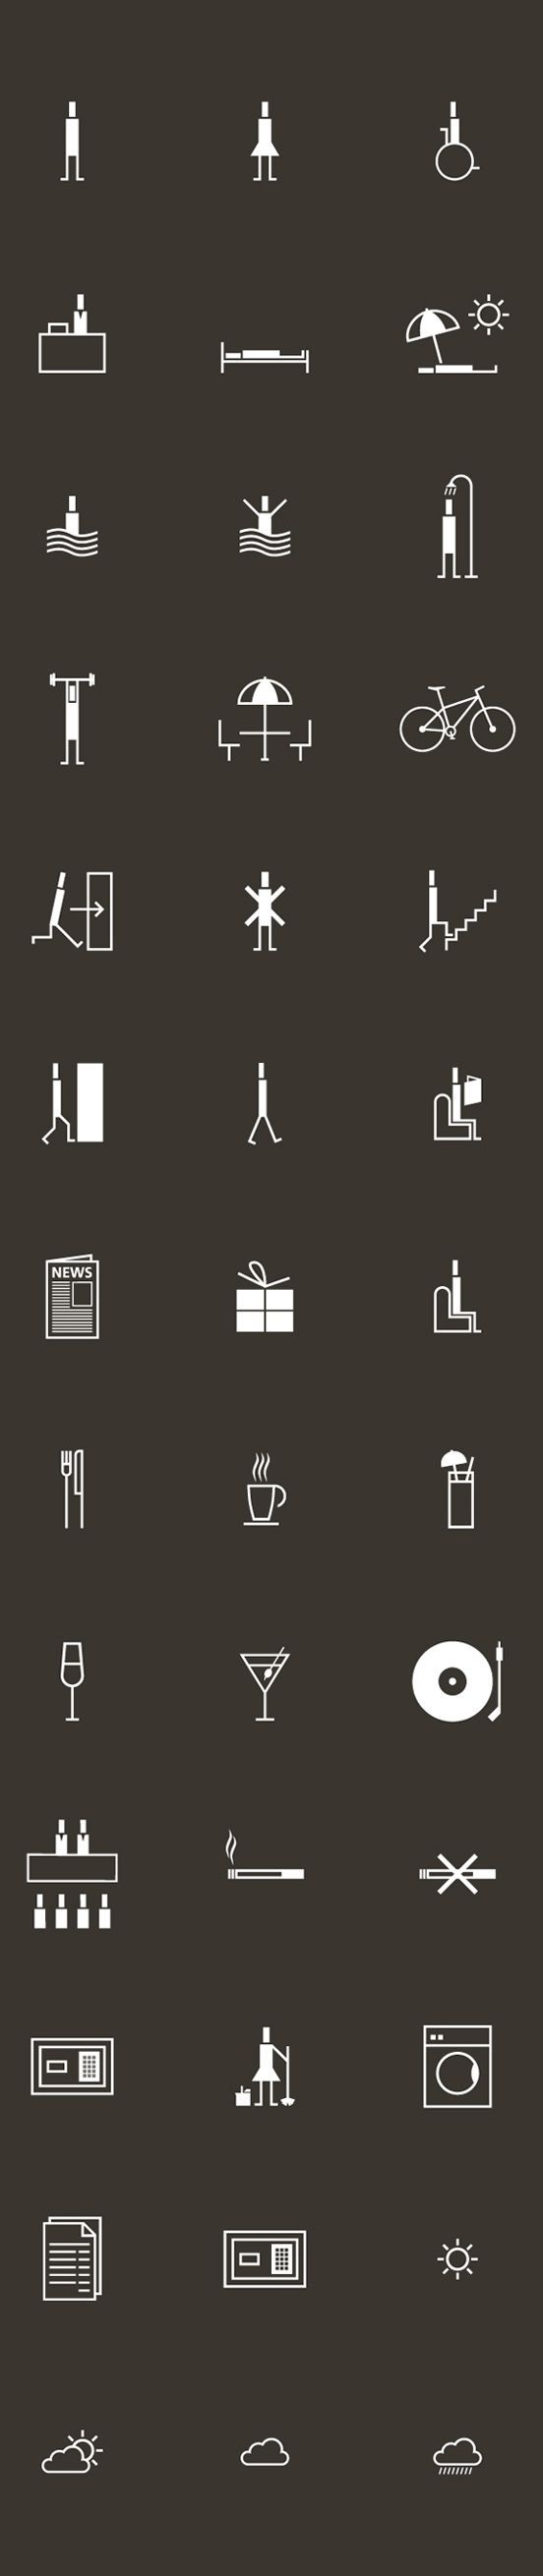 Talkative Pictograms Son Vent Pictograms [Gaizka Design & Sergi Gallent]: